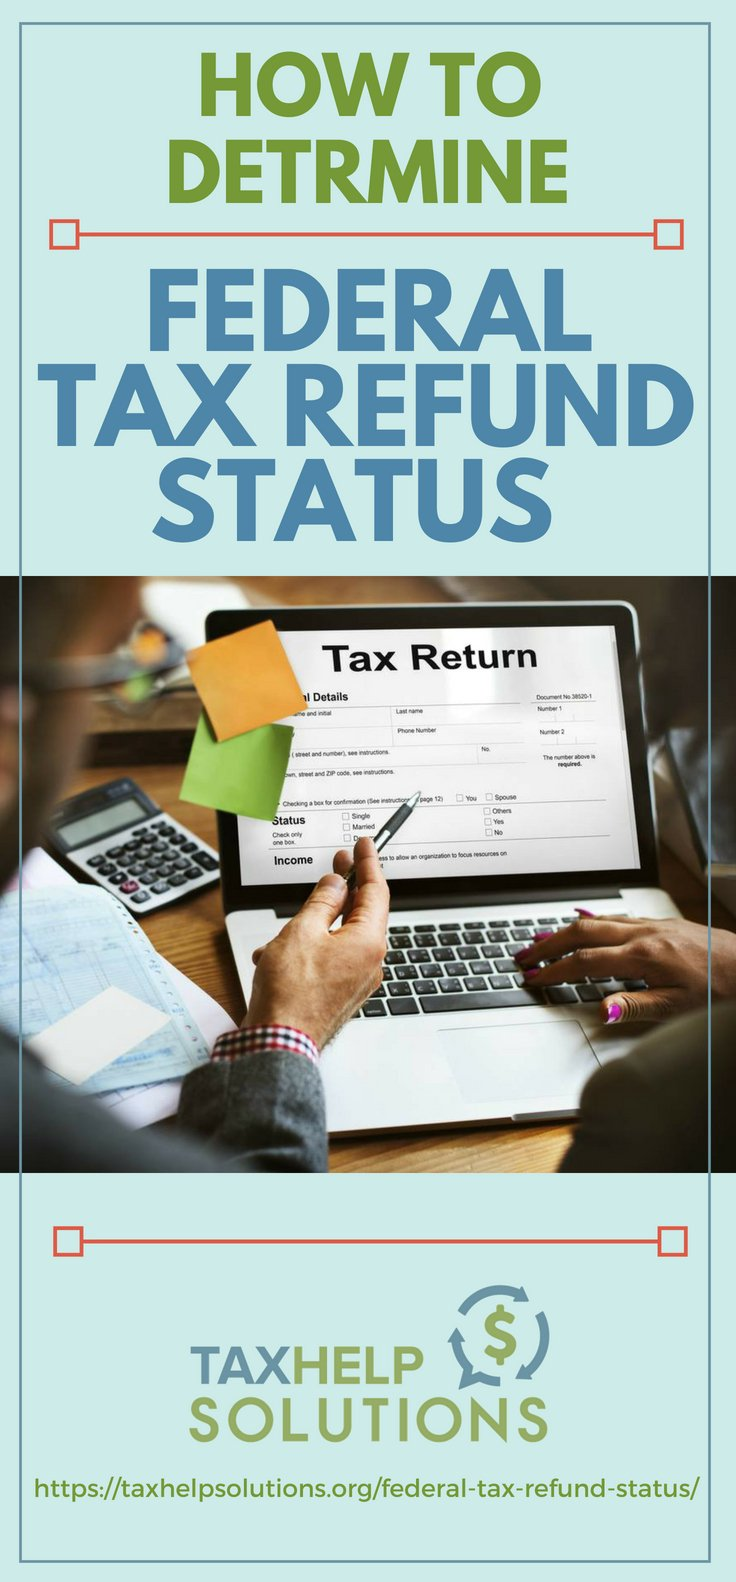 Pinterest Placard | How To Determine Federal Tax Refund Status